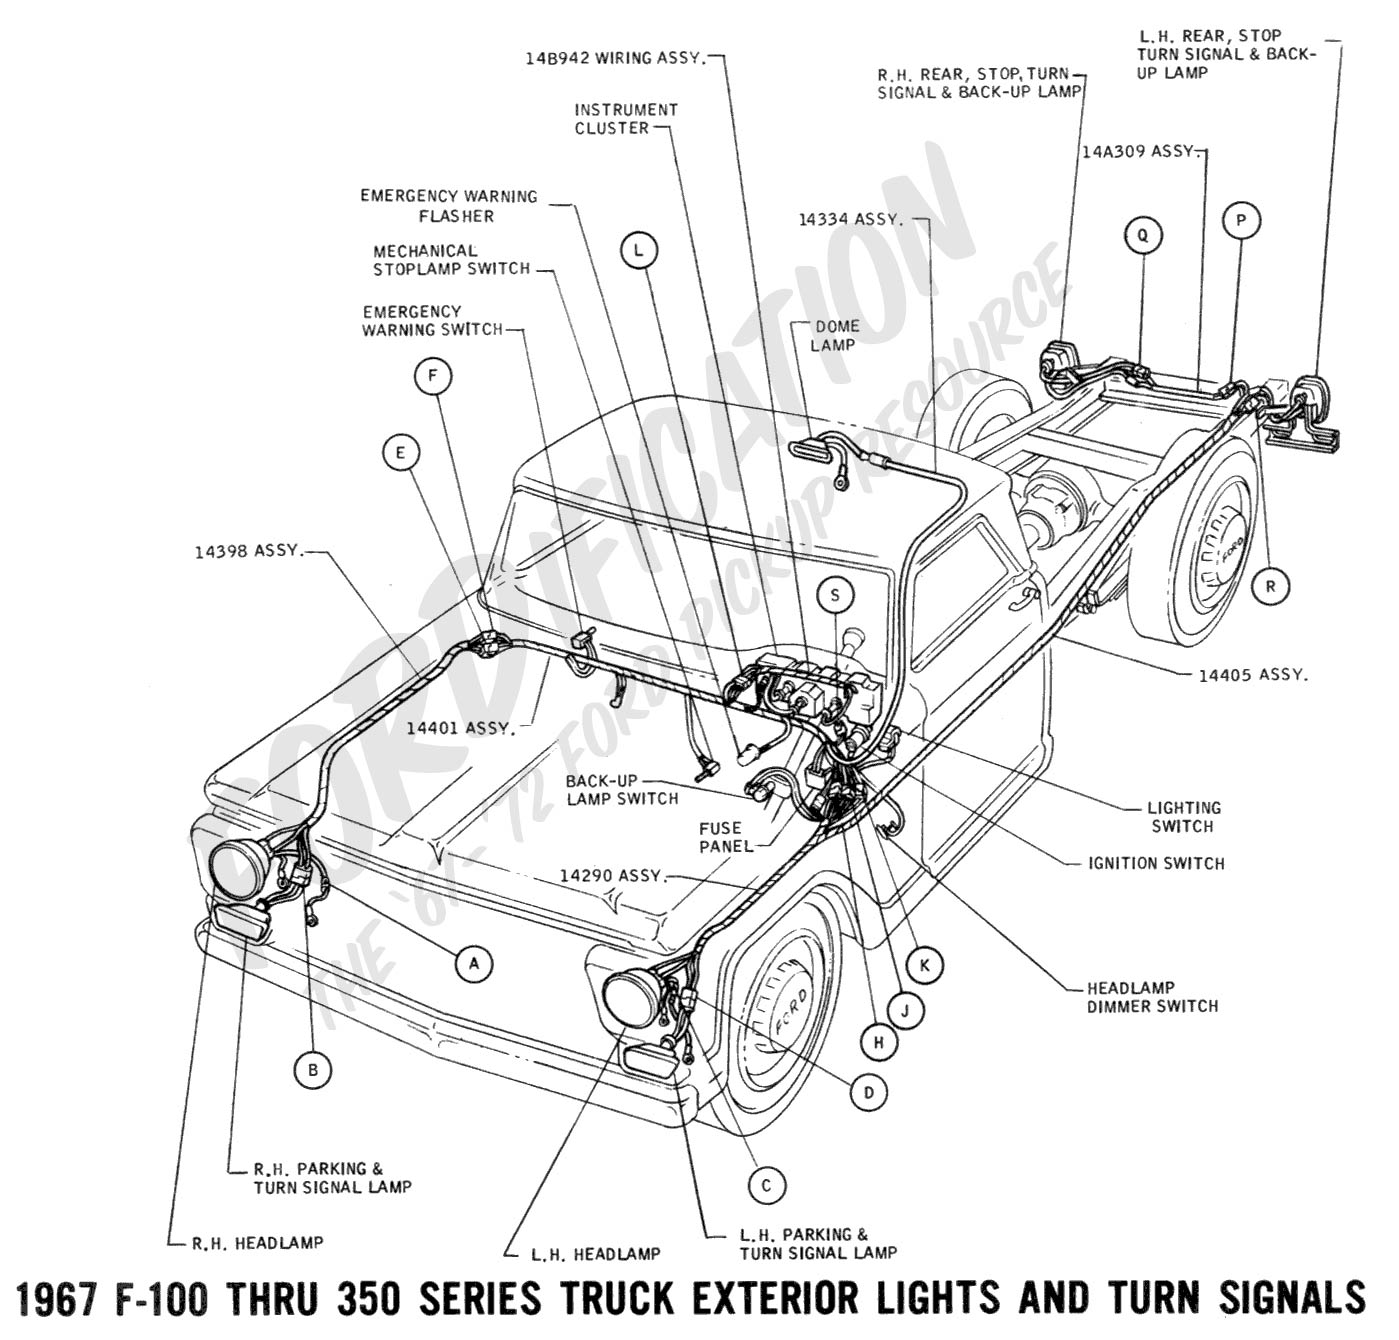 wiring 1967extlights01 ford truck technical drawings and schematics section h wiring 1994 ford f150 xlt wiring diagram at n-0.co